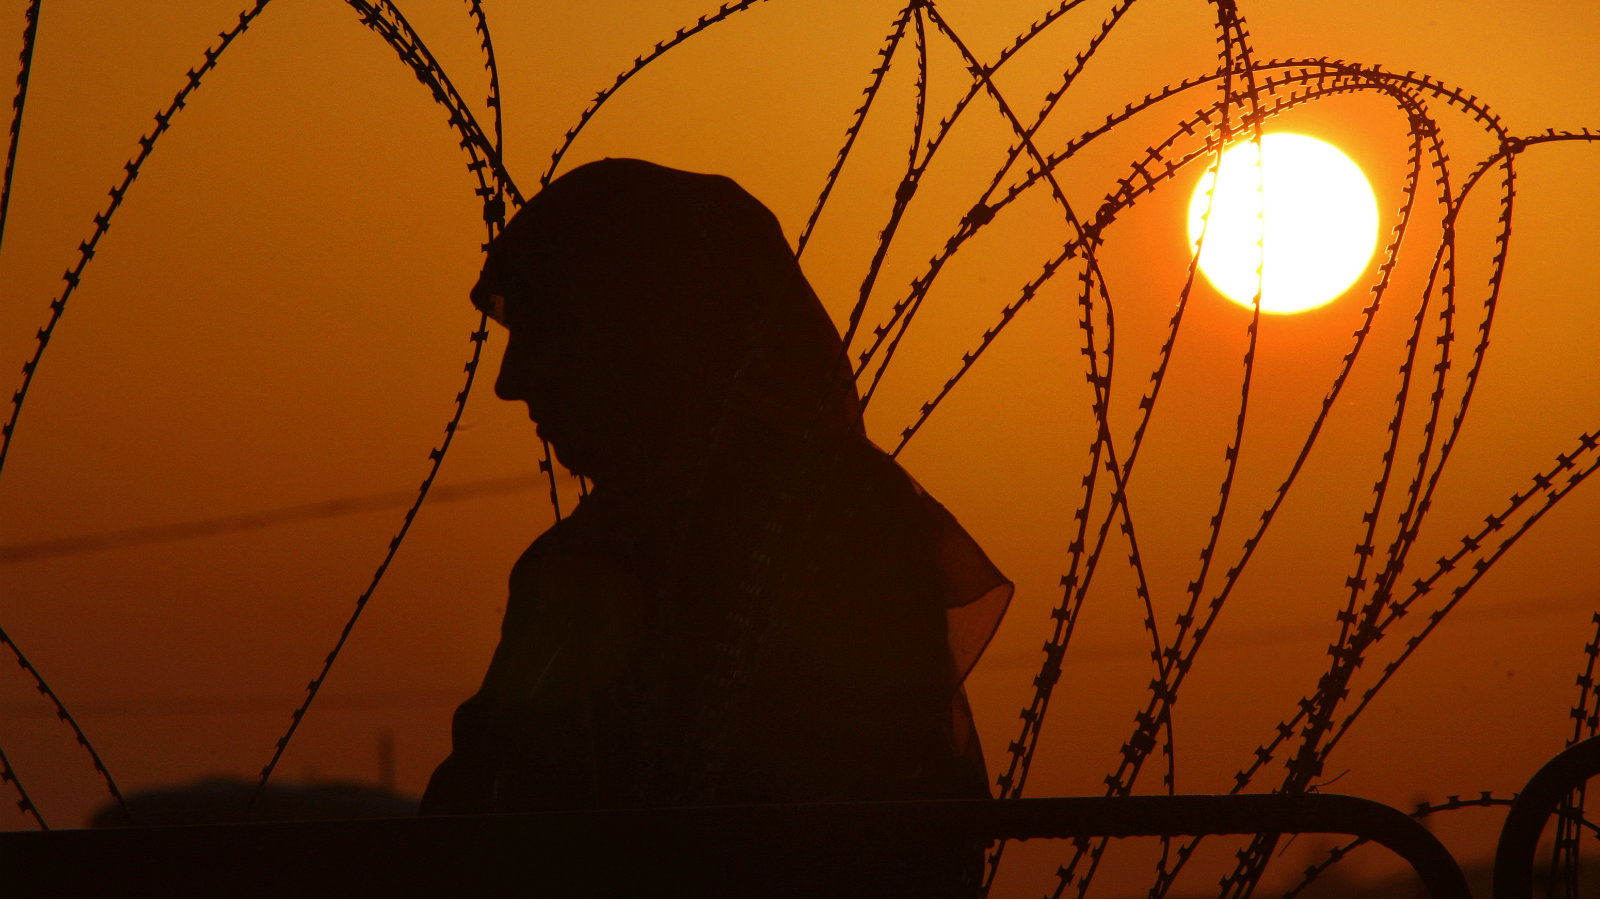 A Palestinian woman waits behind barbed wire for permission to cross Qalandiya checkpoint near the West Bank city of Ramallah early September 18, 2009, as she tries to reach the al-Aqsa mosque in Jerusalem on the fourth and last Friday of the Muslim holy month of Ramadan. Muslims around the world abstain from eating, drinking and sexual relations from sunrise to sunset during Ramadan, the holiest month in the Islamic calendar.